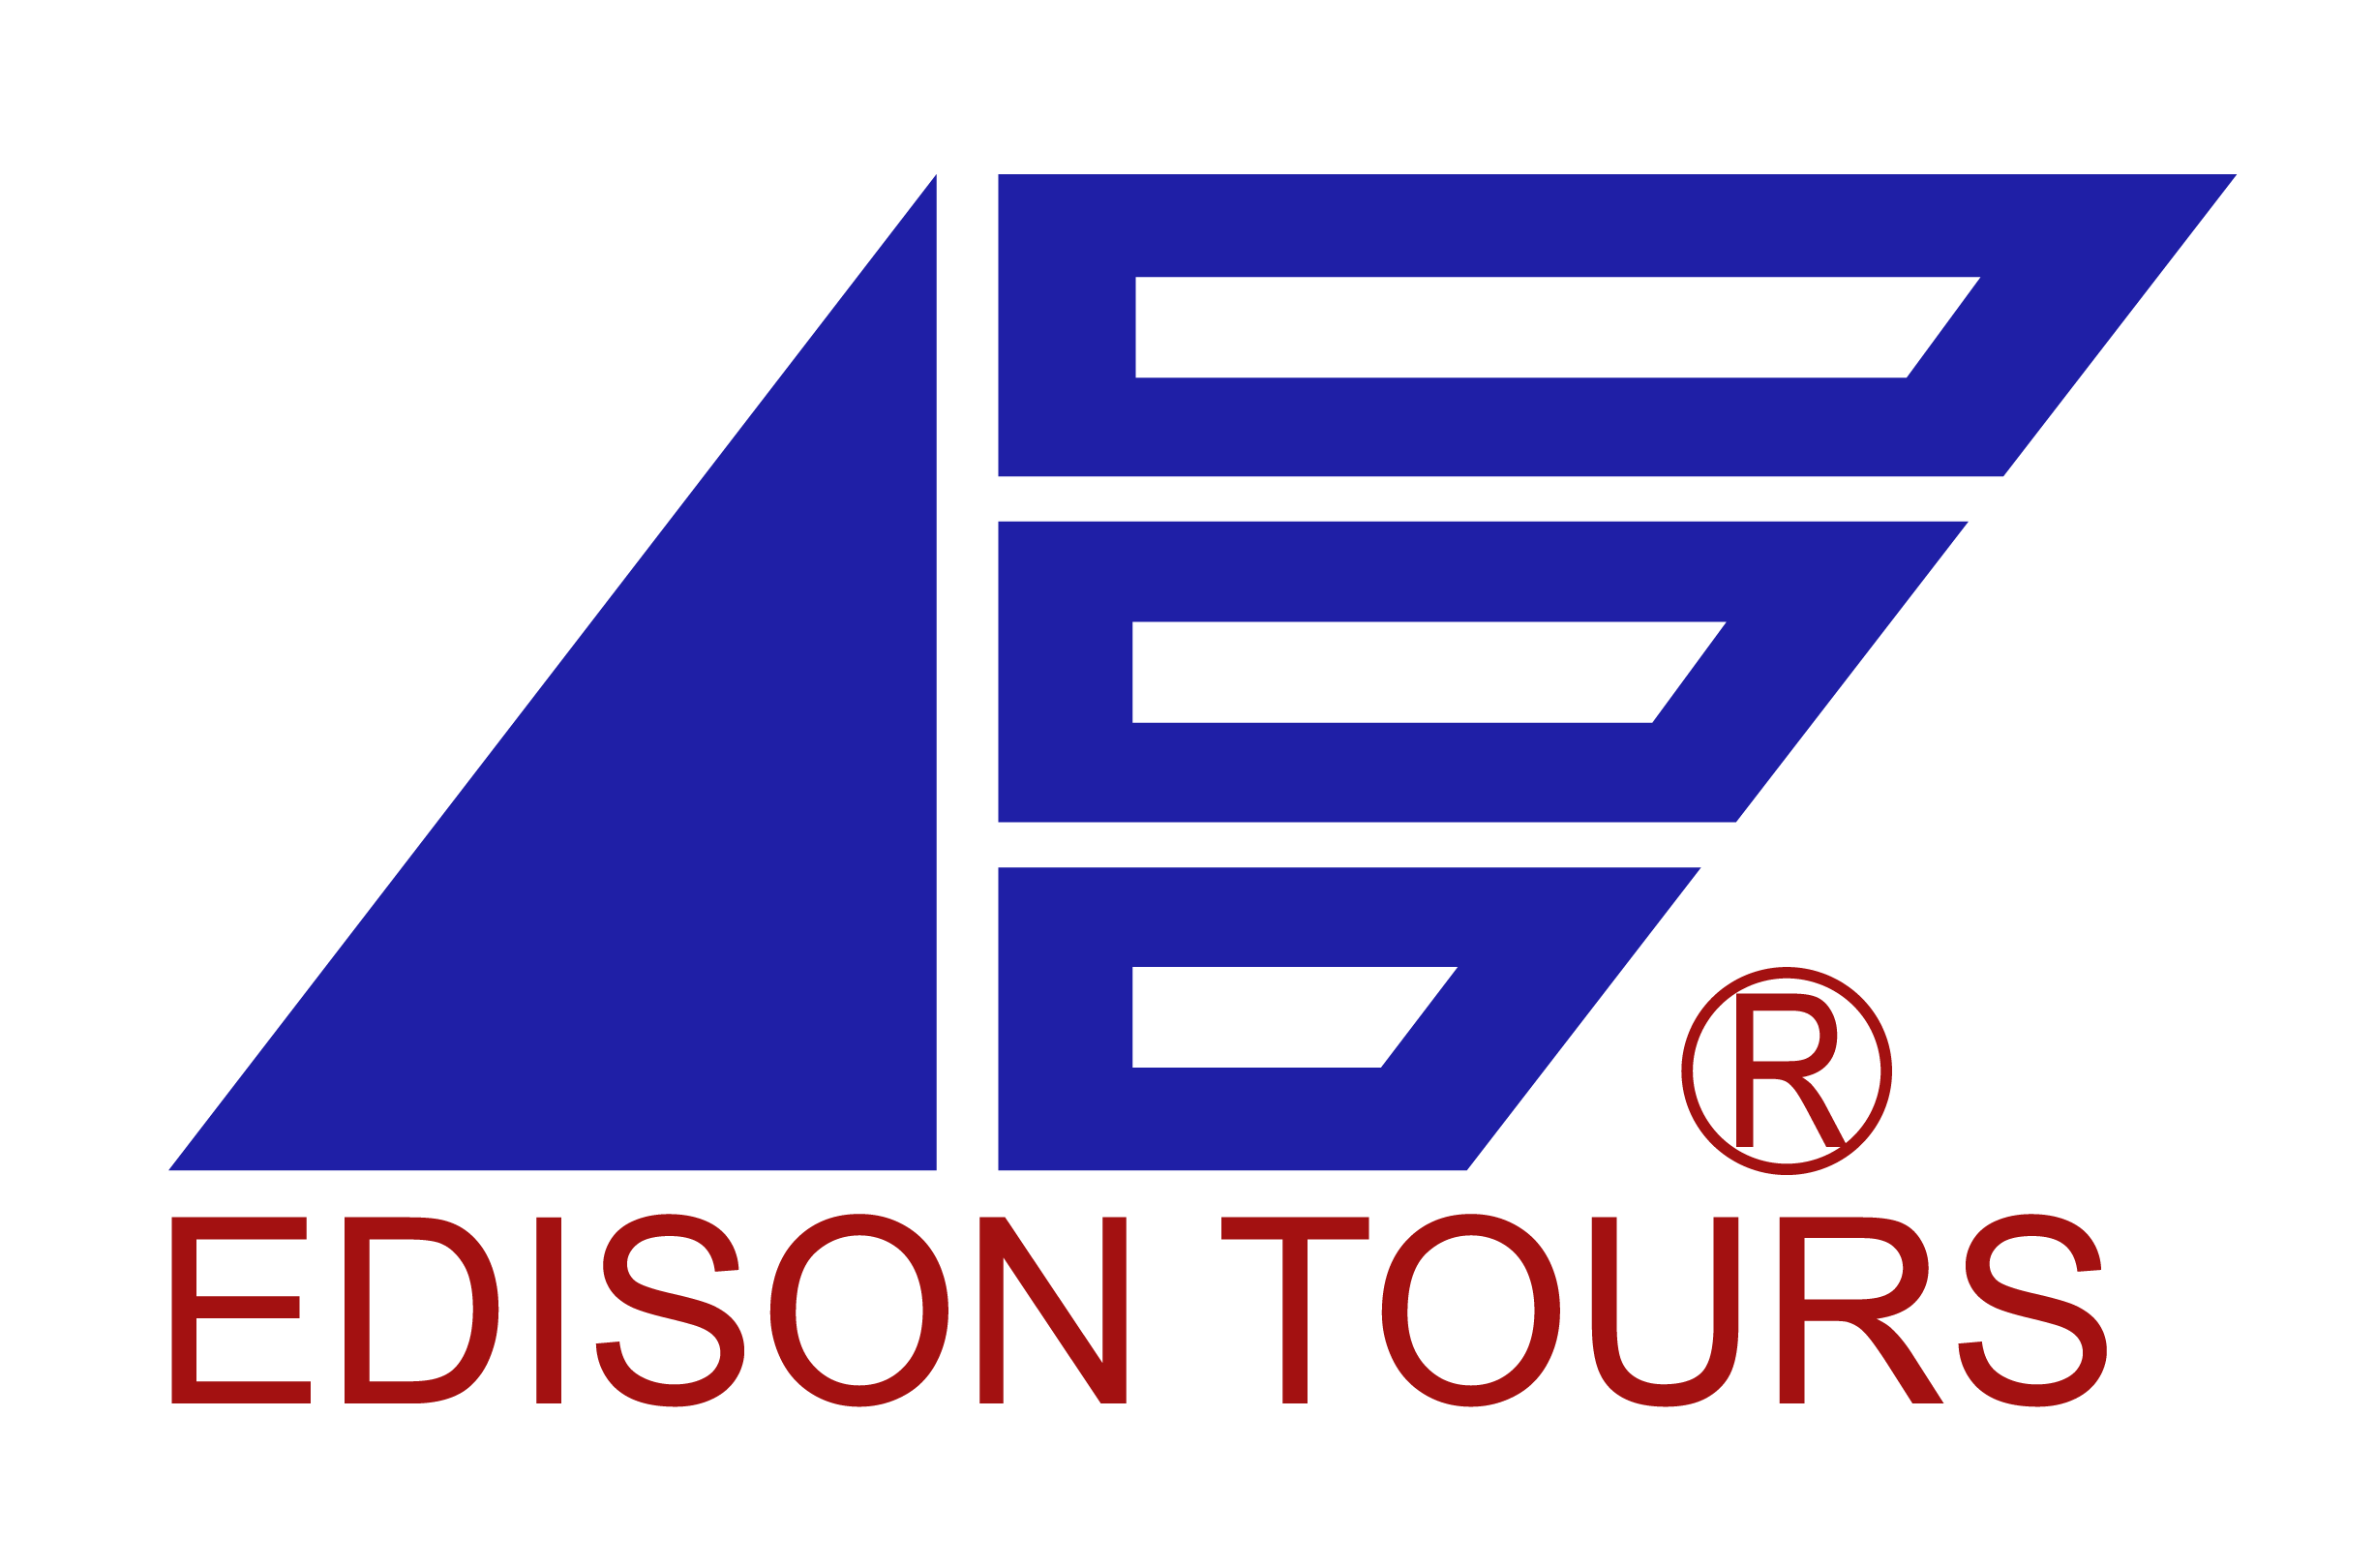 Edison Travel Service Co., Ltd